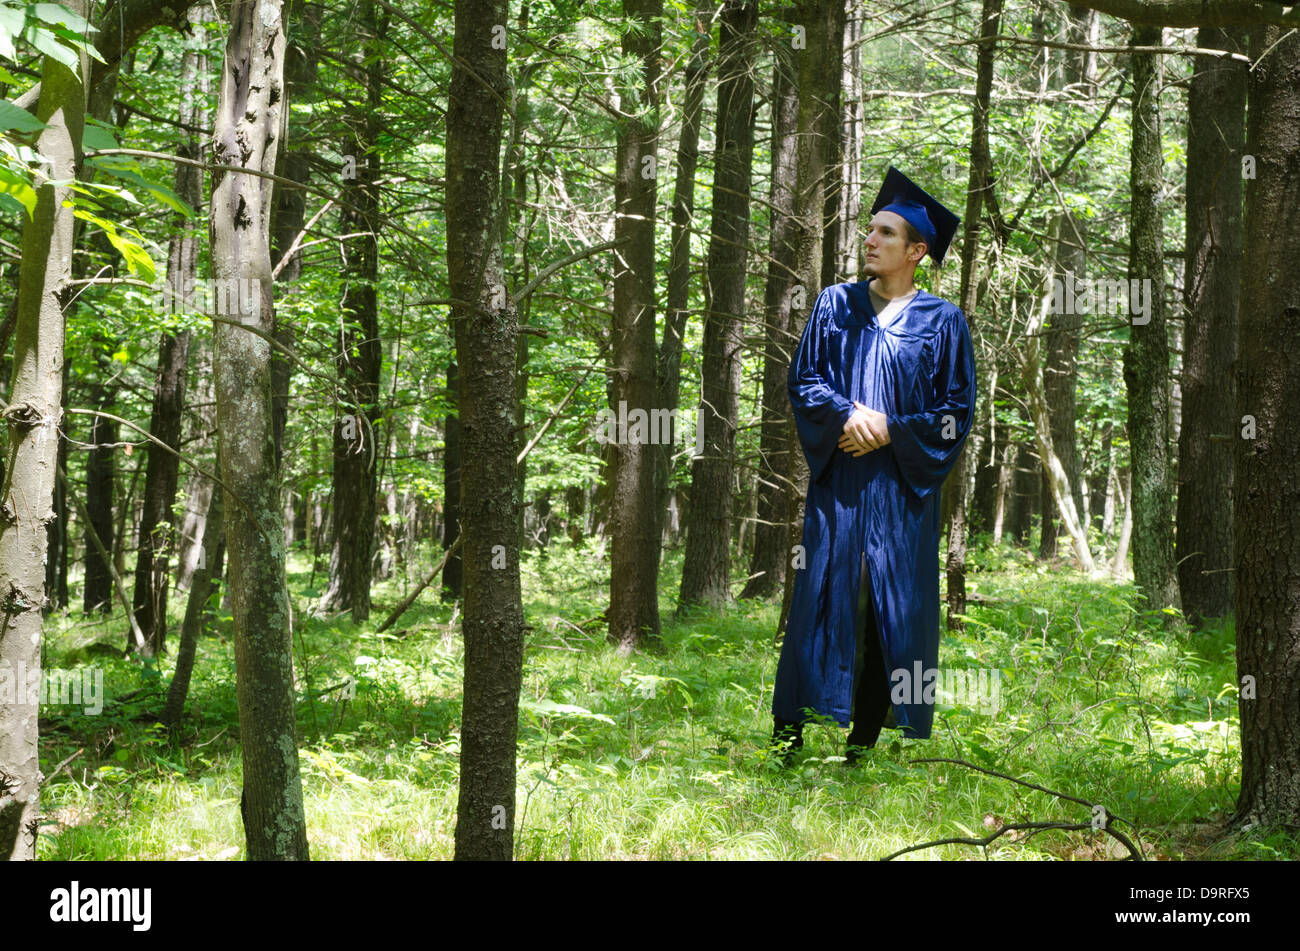 graduate student standing in forest - Stock Image